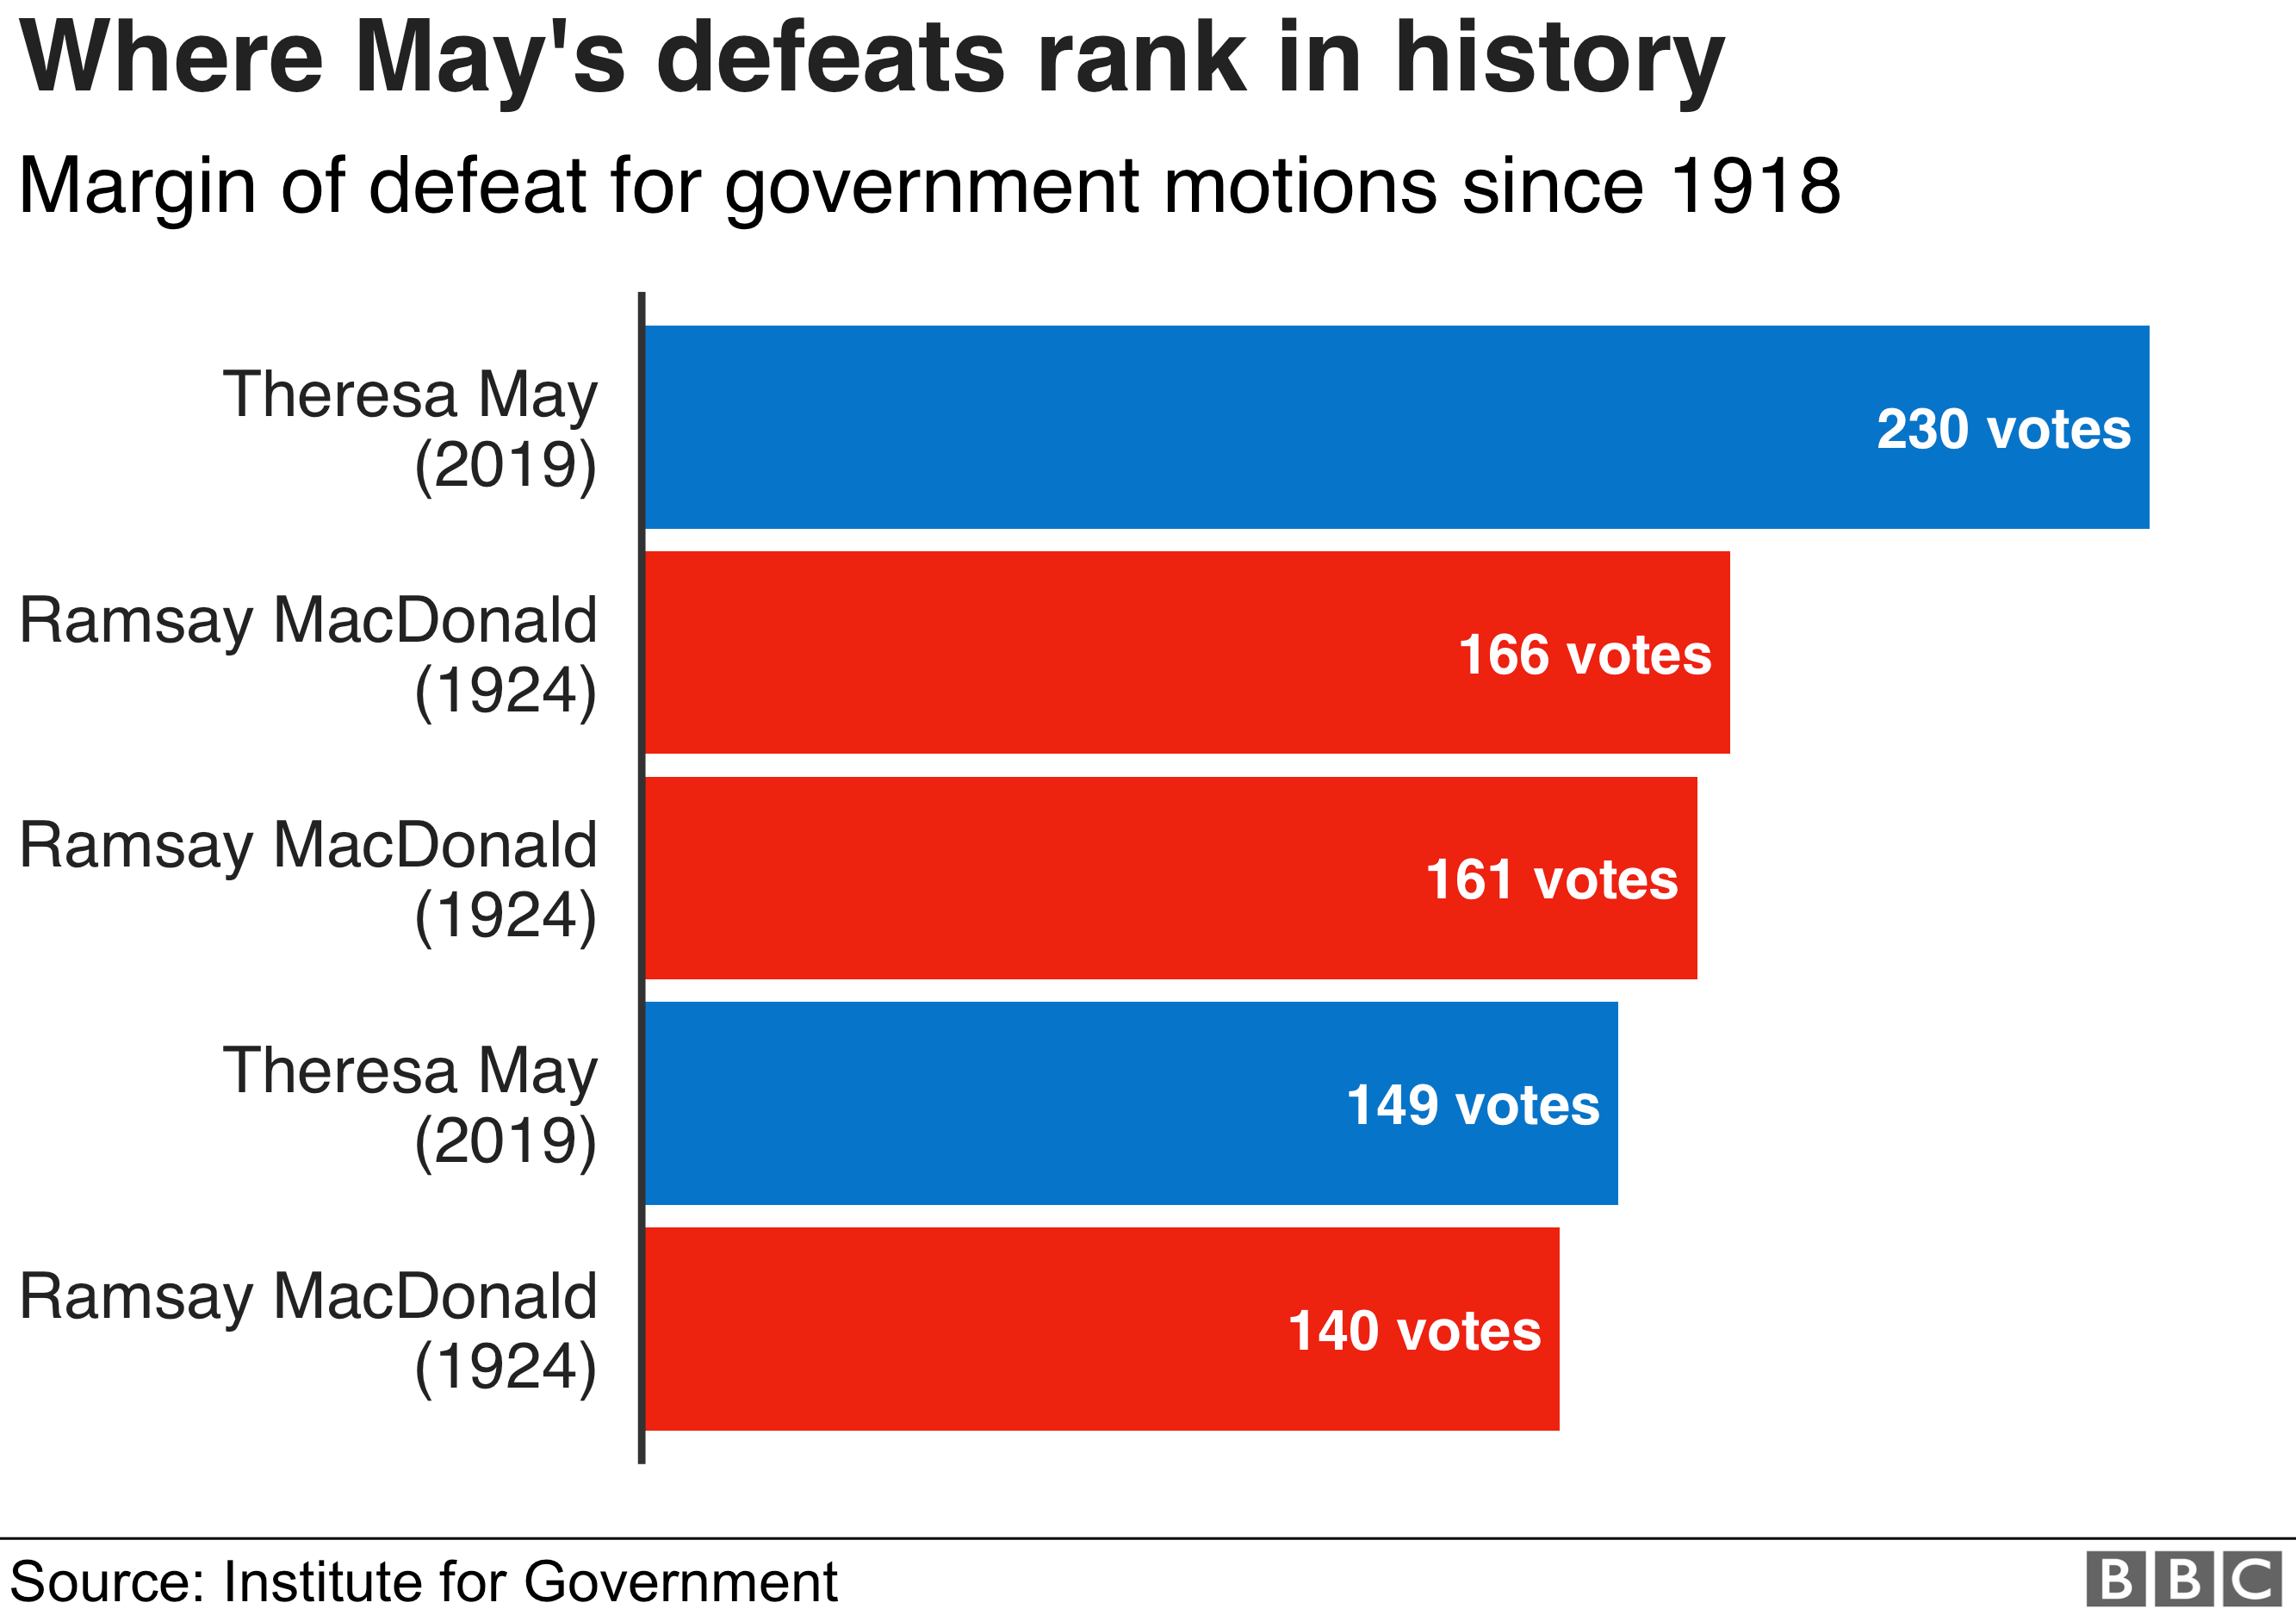 Chart showing where May's defeats in the House of Commons rank in history